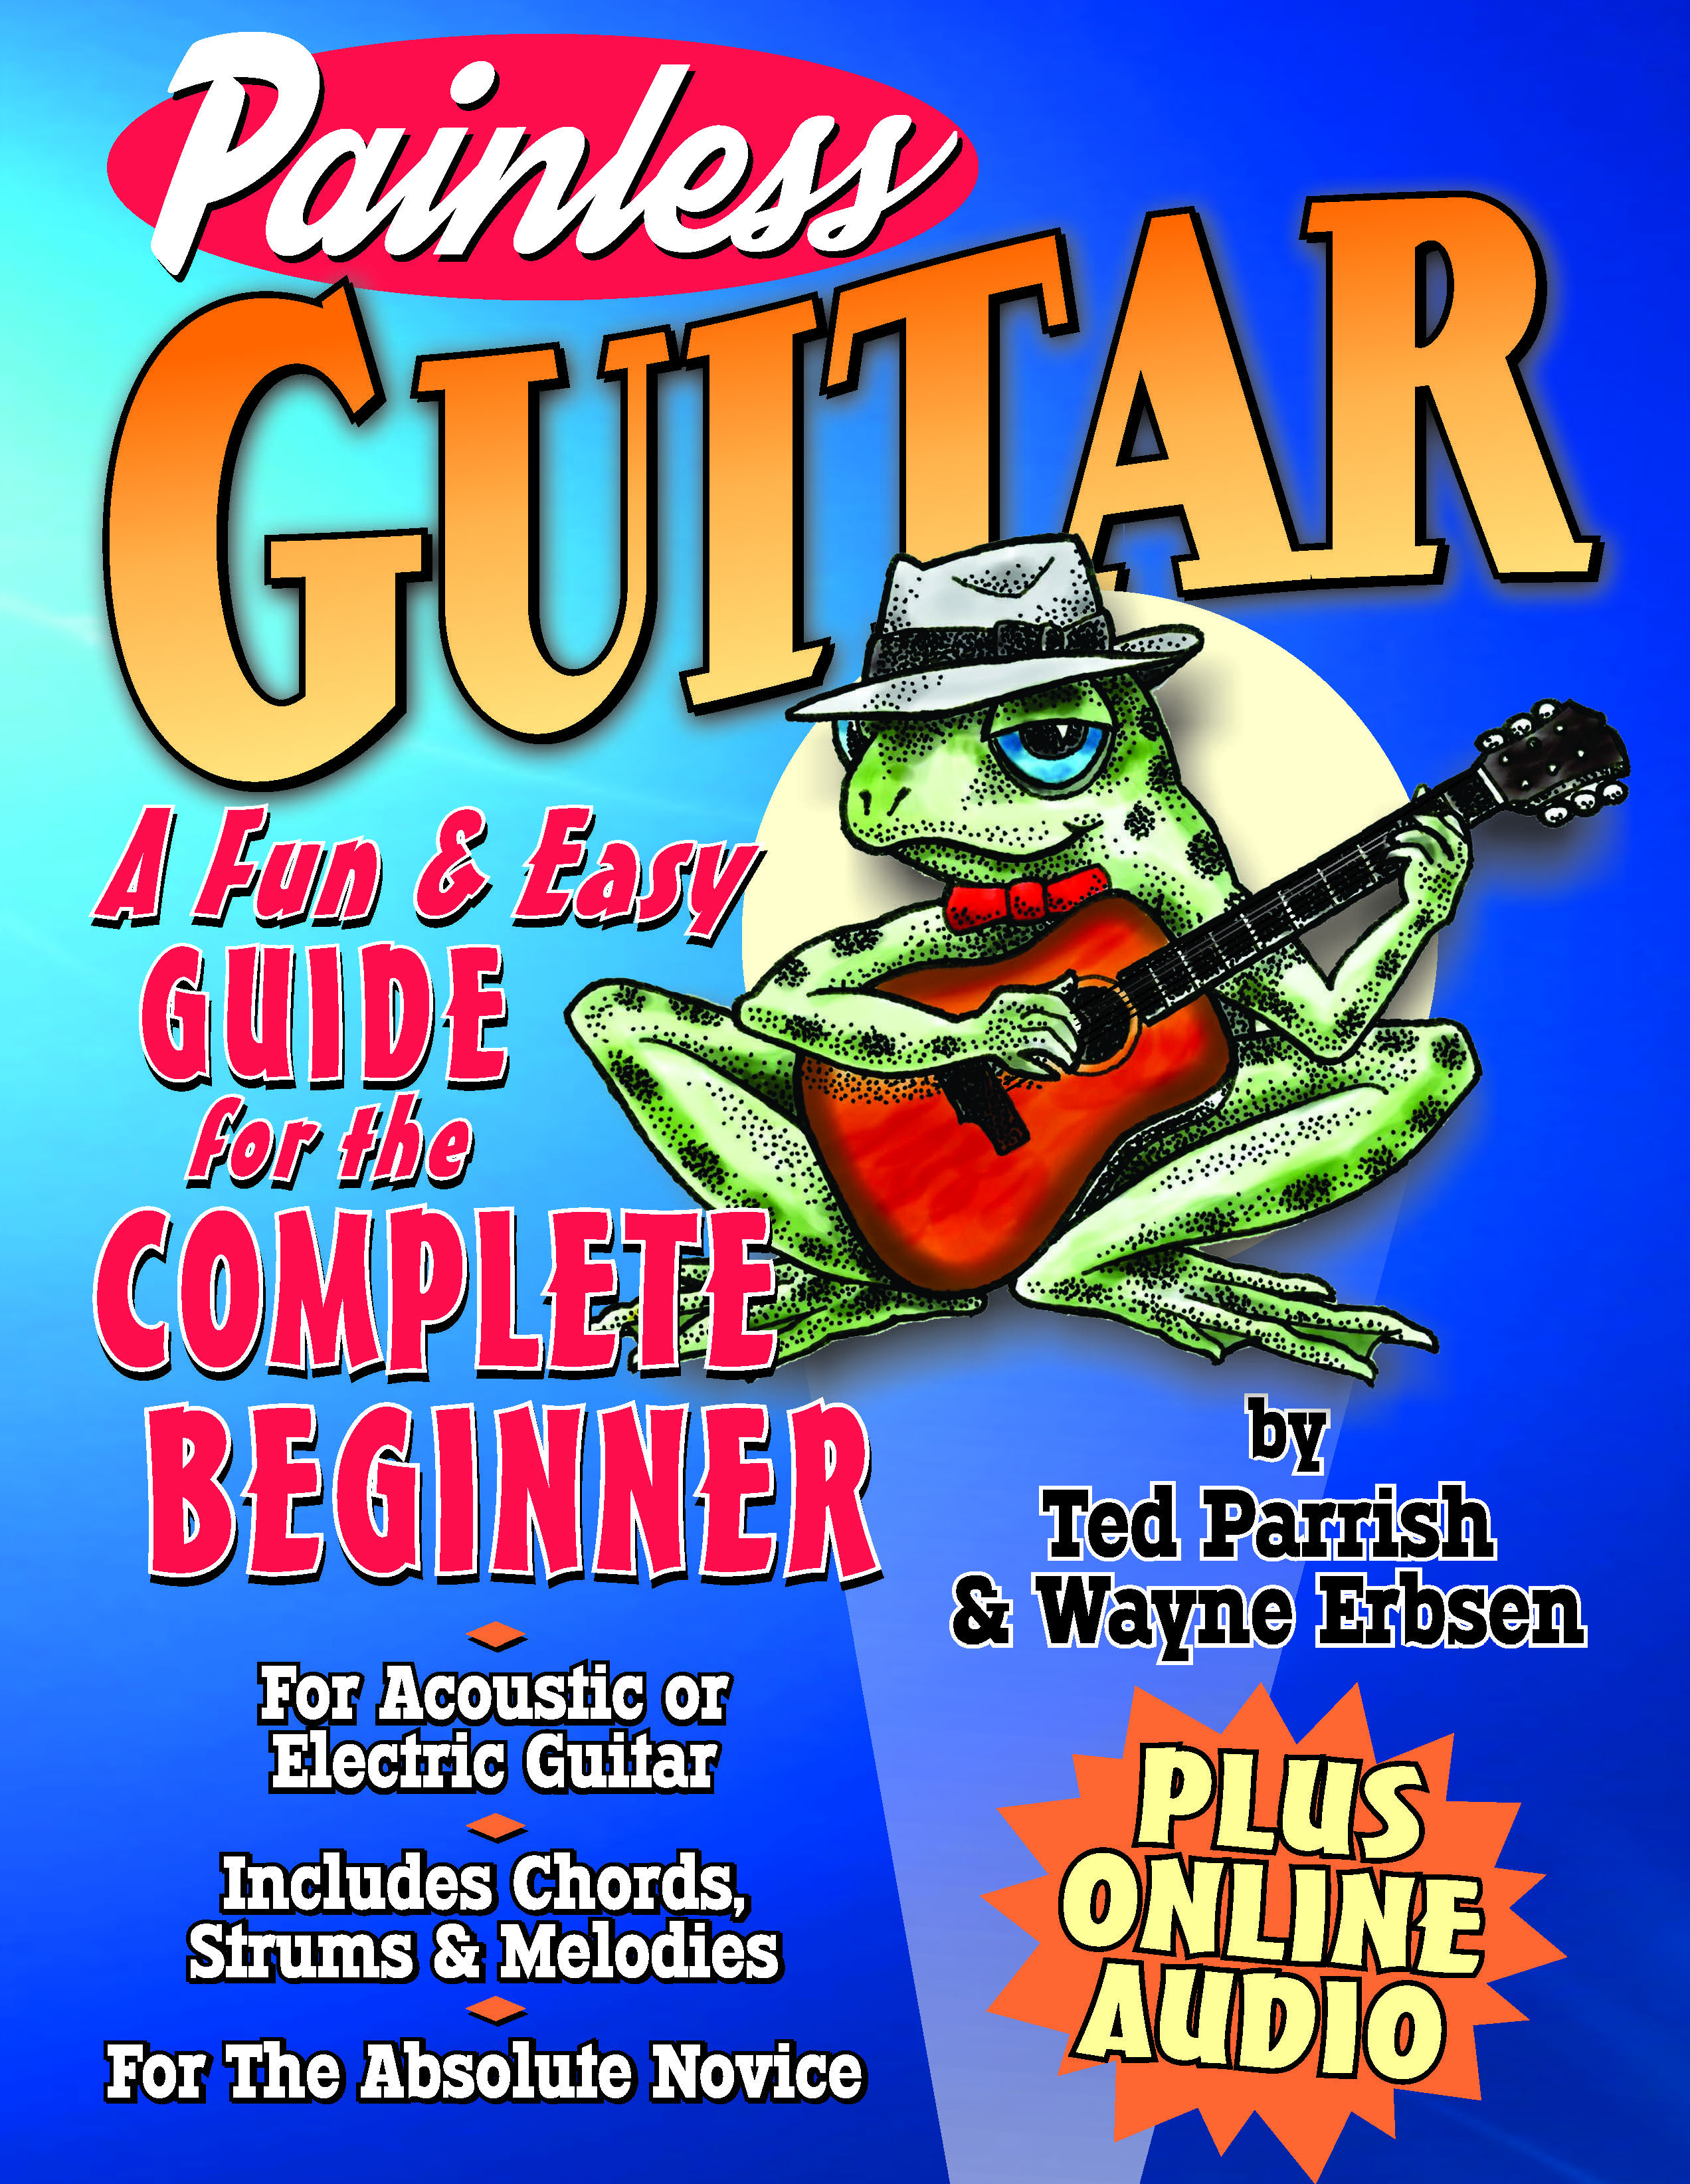 Painless Guitar - A Fun & Easy Guide for the Complete Beginner